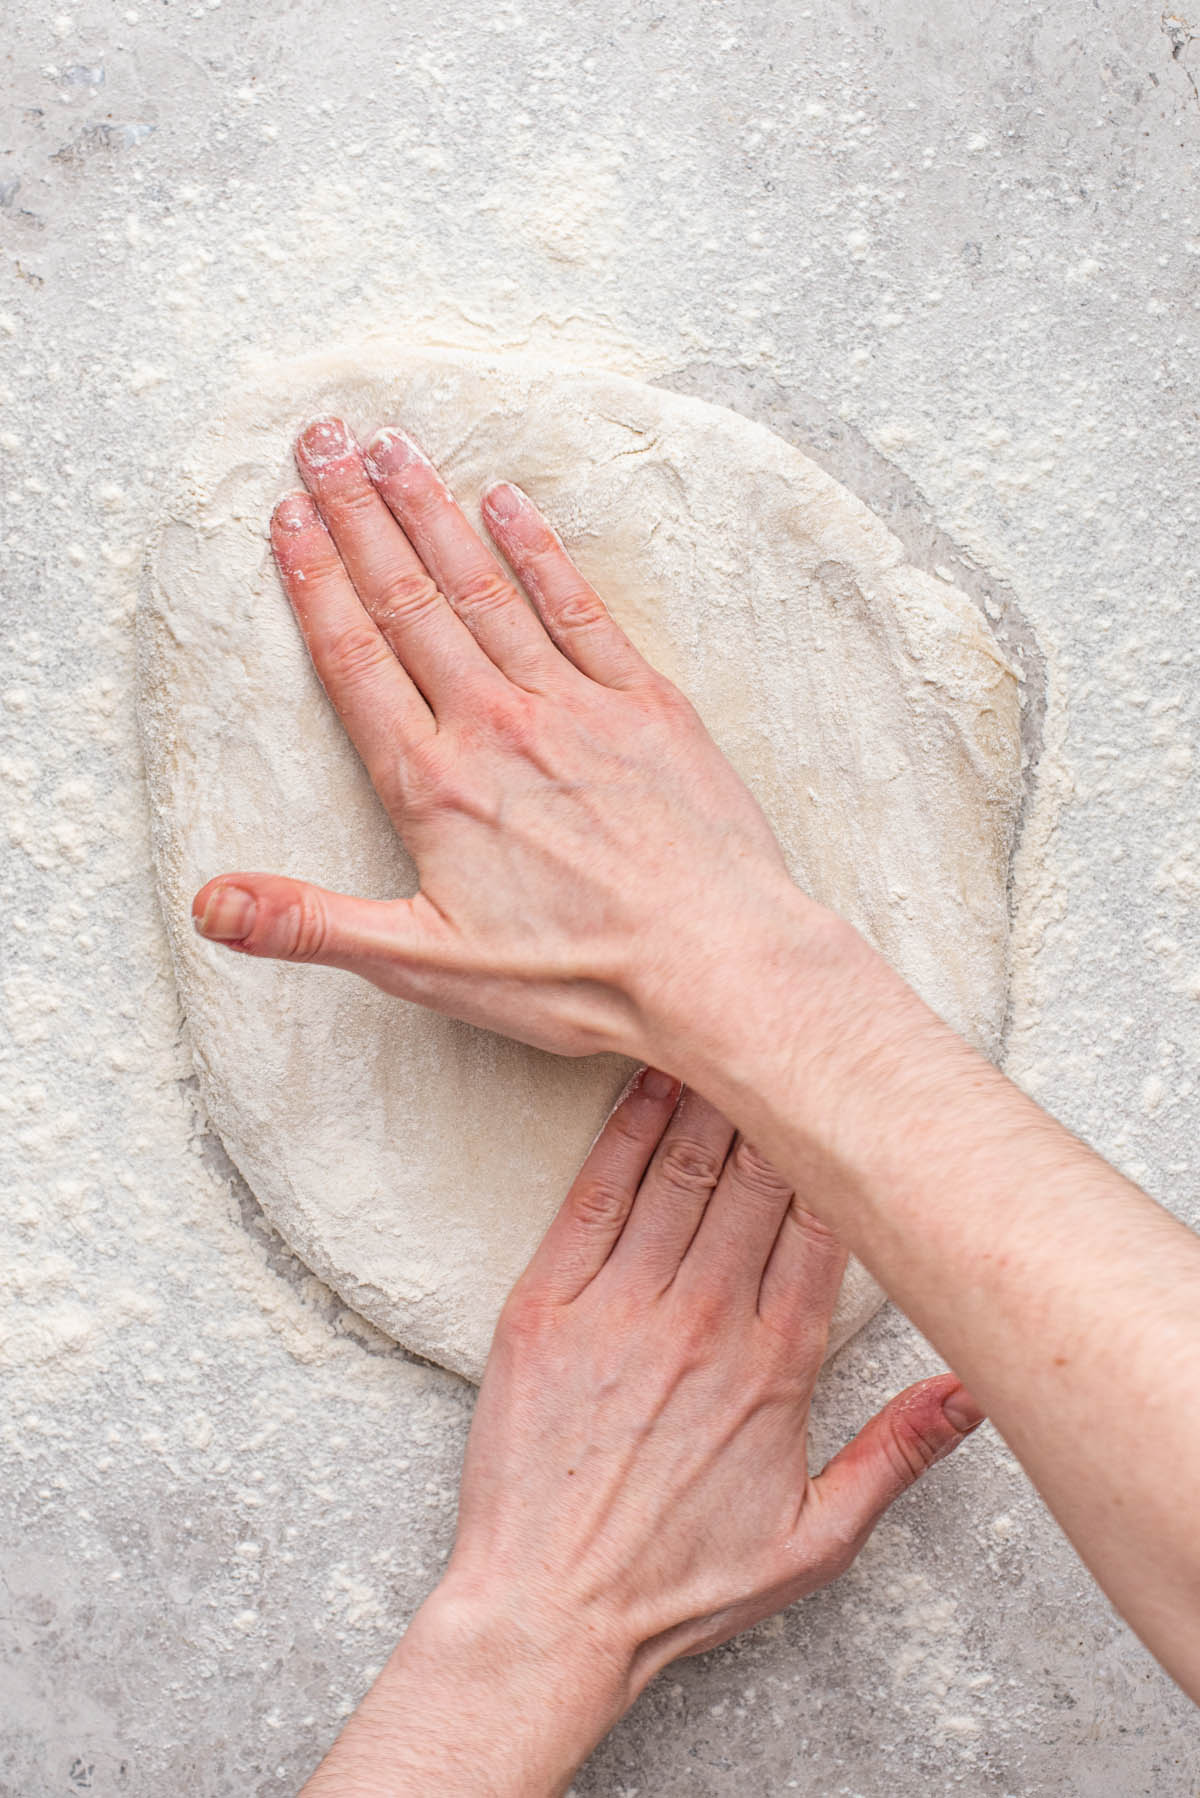 Patting out the dough into a rectangle.